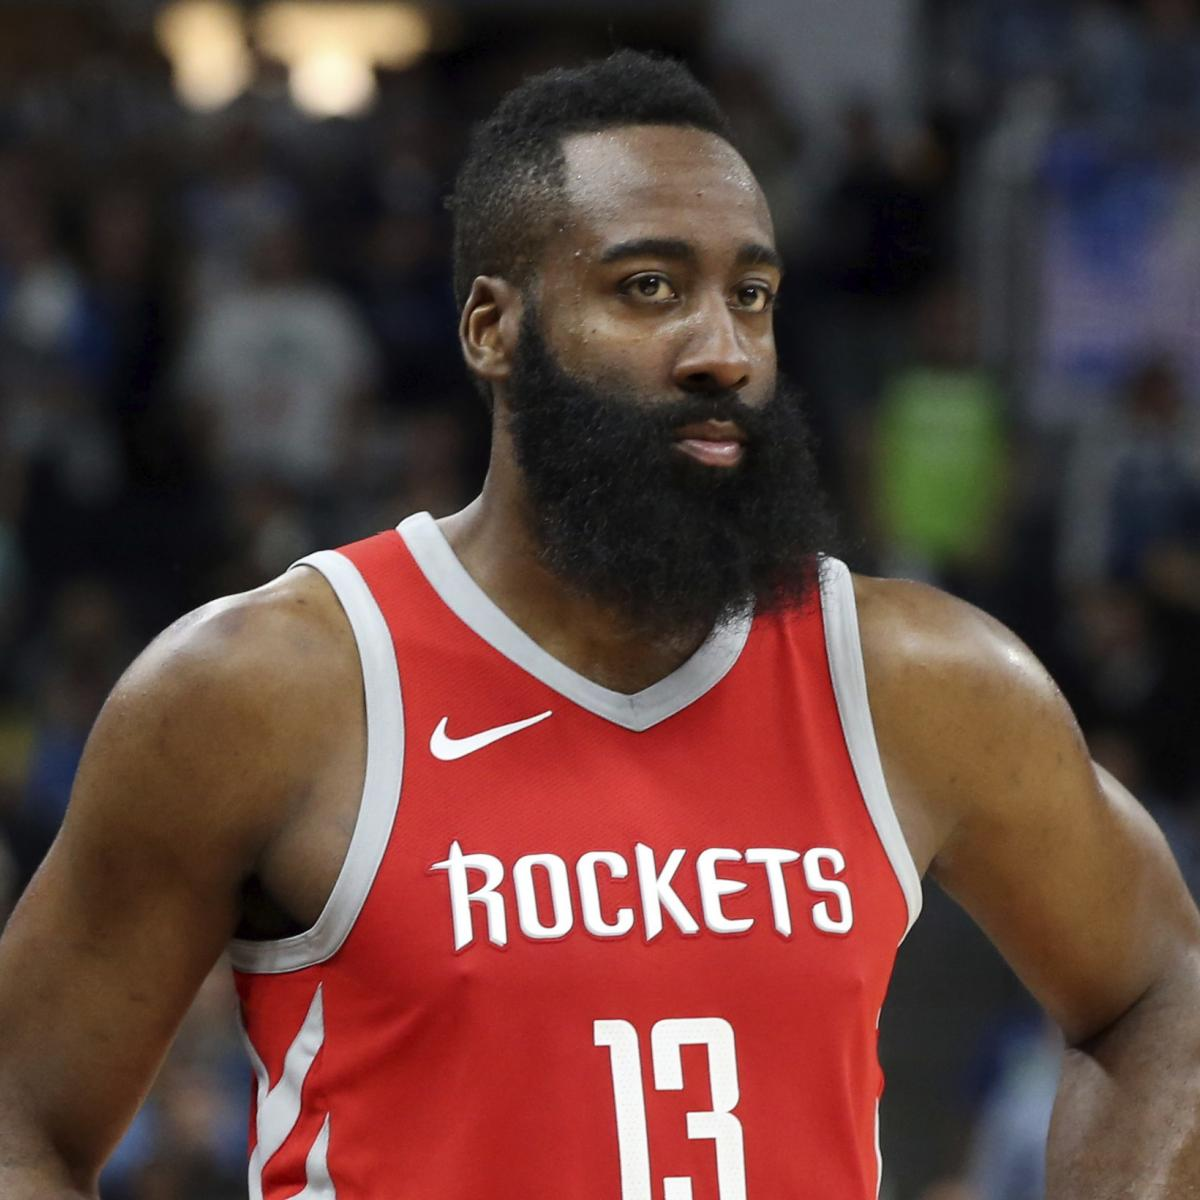 James Harden Latest News: Prosecutor To Review James Harden Allegedly Taking Woman's